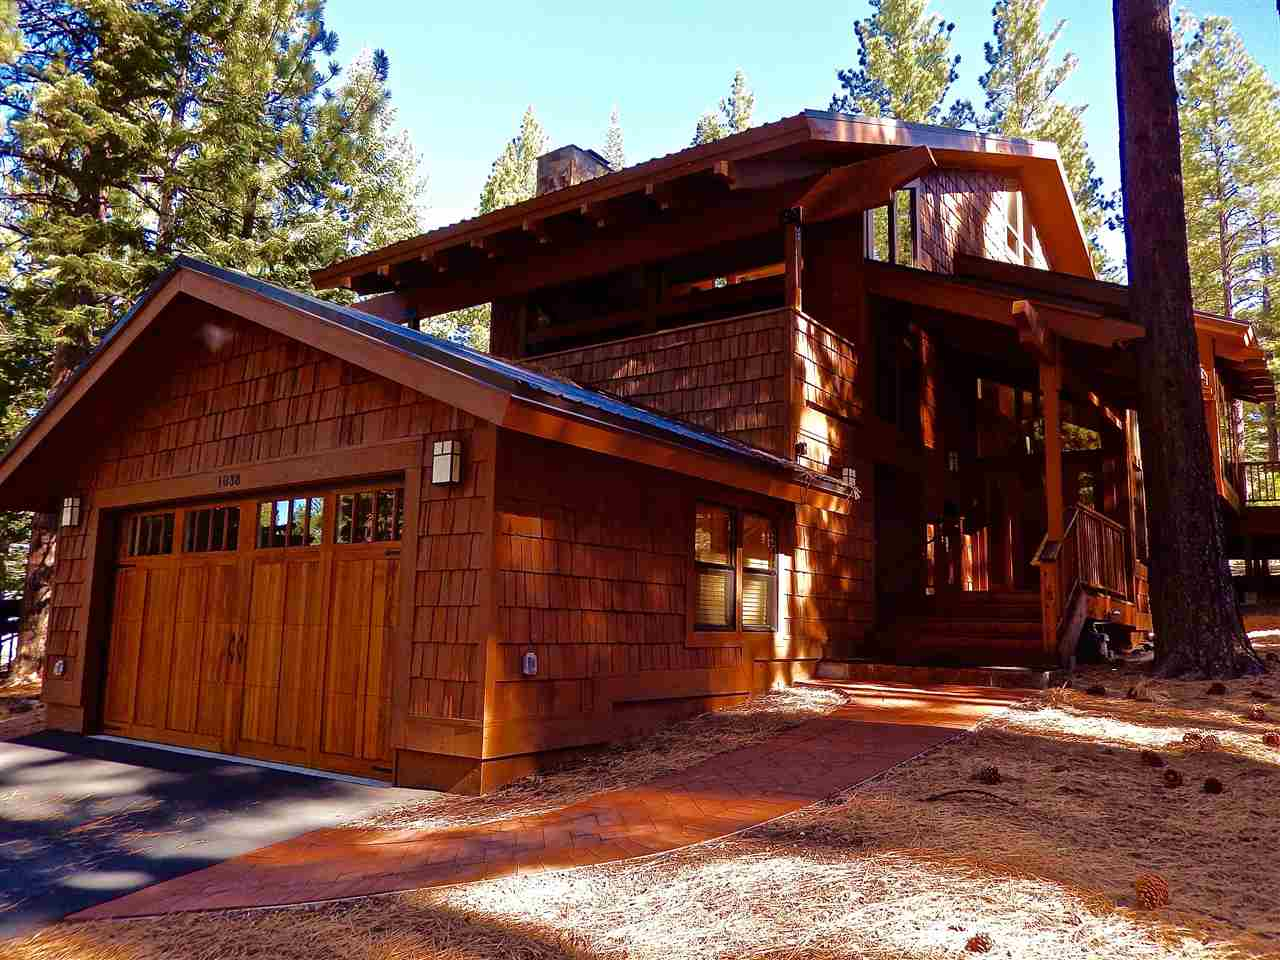 Single Family Home for Active at 1038 Martis Landing 1038 Martis Landing Truckee, California 96161 United States